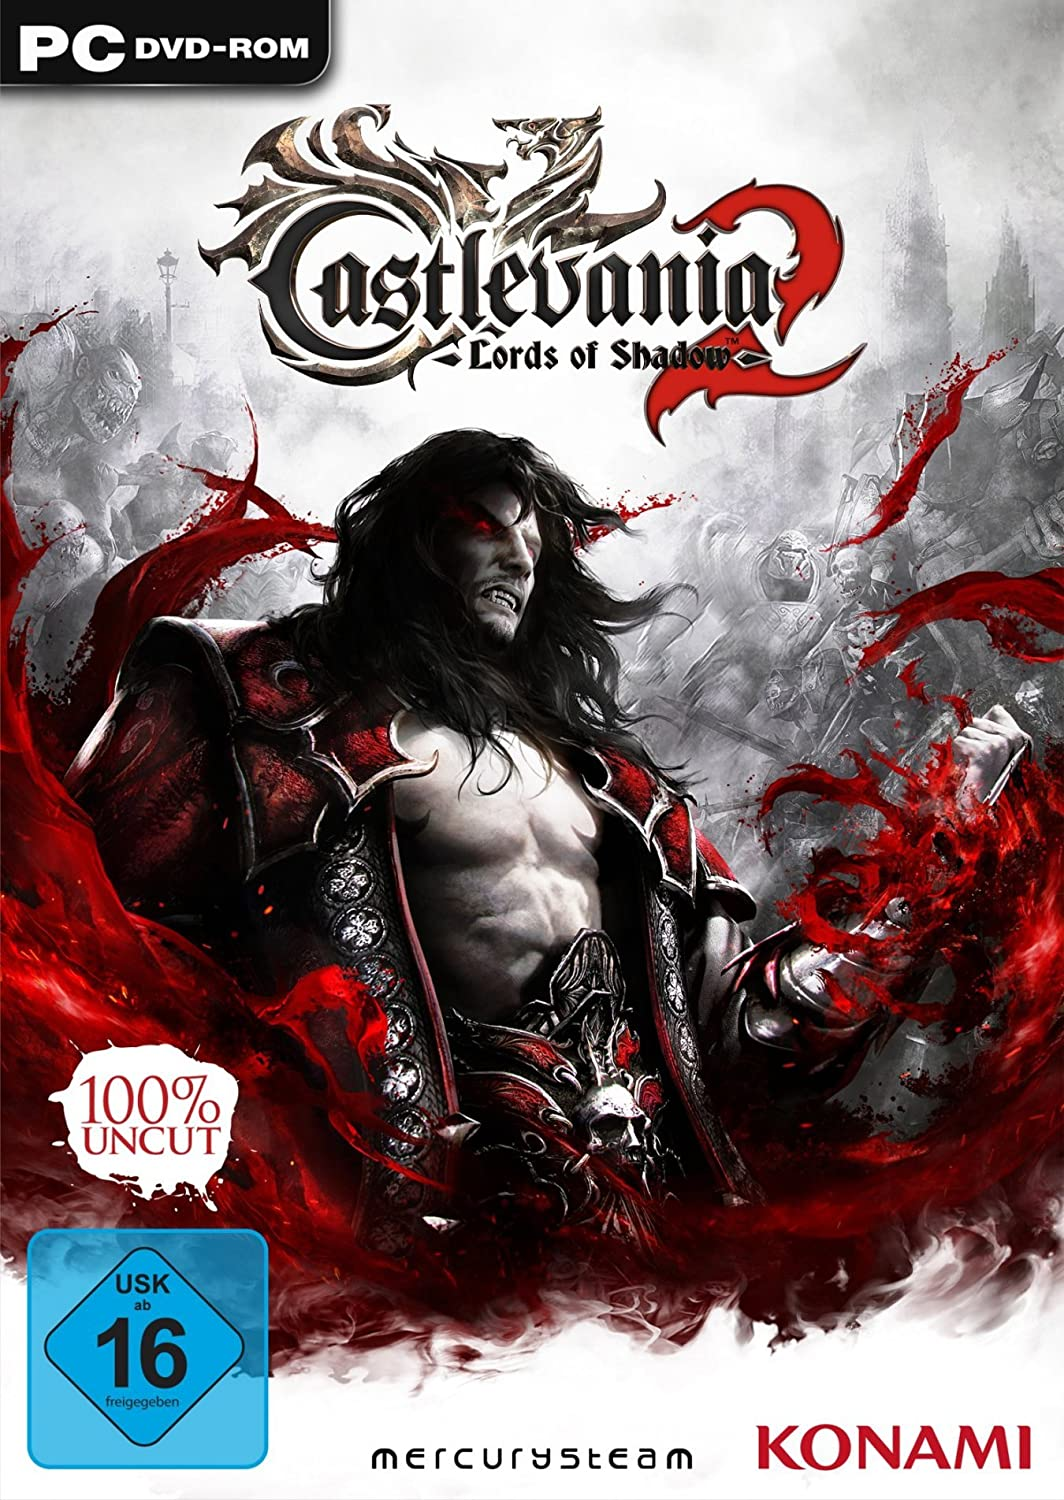 Castlevania: Lords of Shadows 2, PC